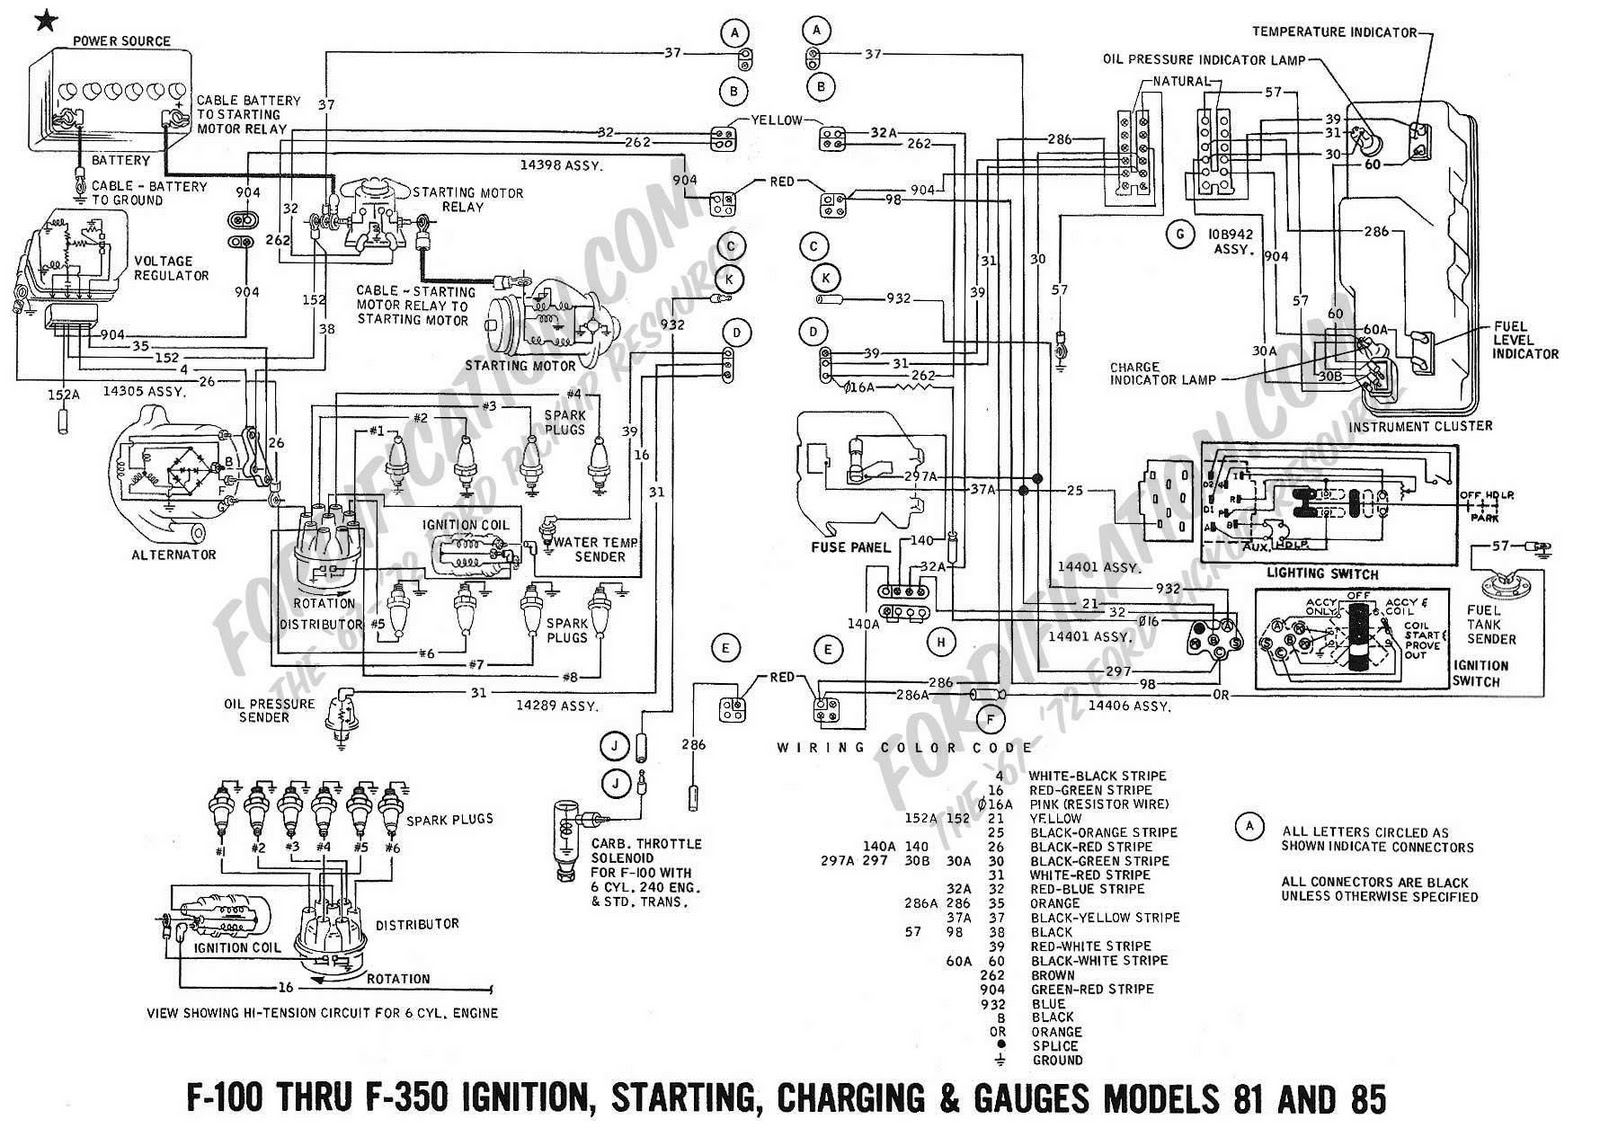 1956 ford f100 wiring diagram. Black Bedroom Furniture Sets. Home Design Ideas